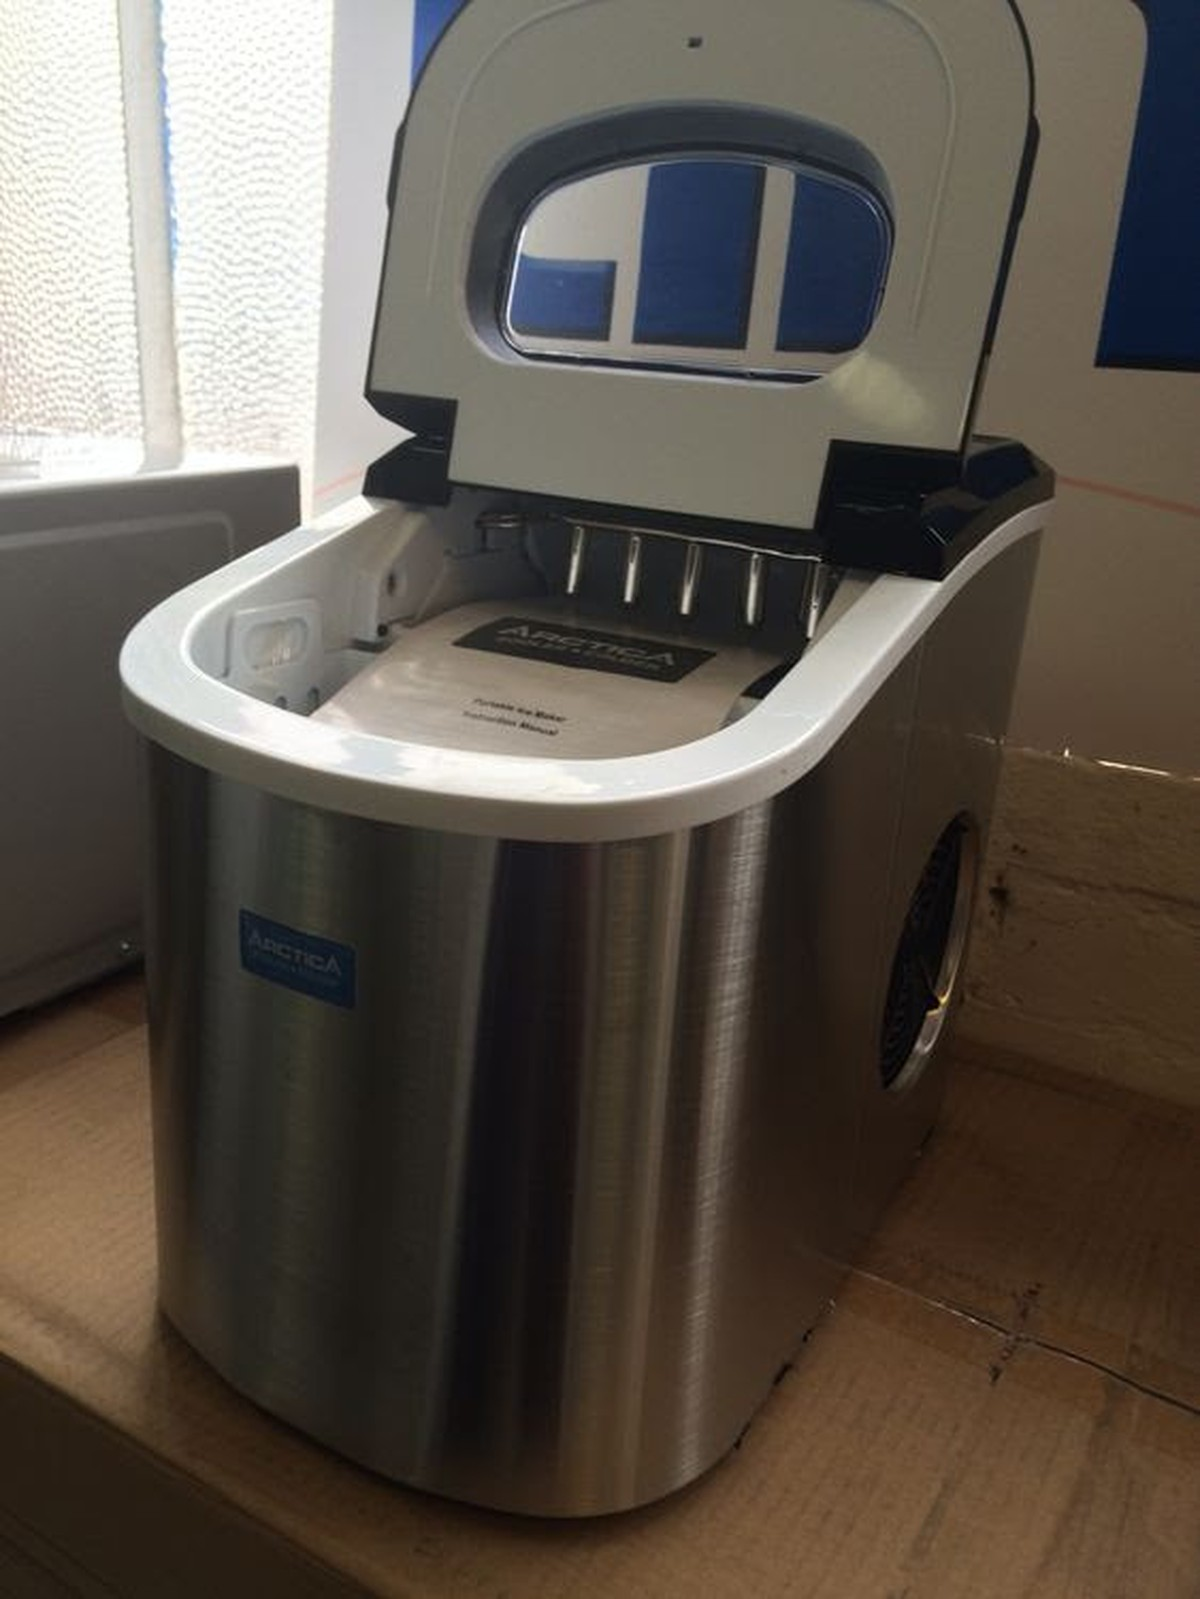 ... Equipment and Coolers New Arctica Countertop Ice Maker - Gloucester